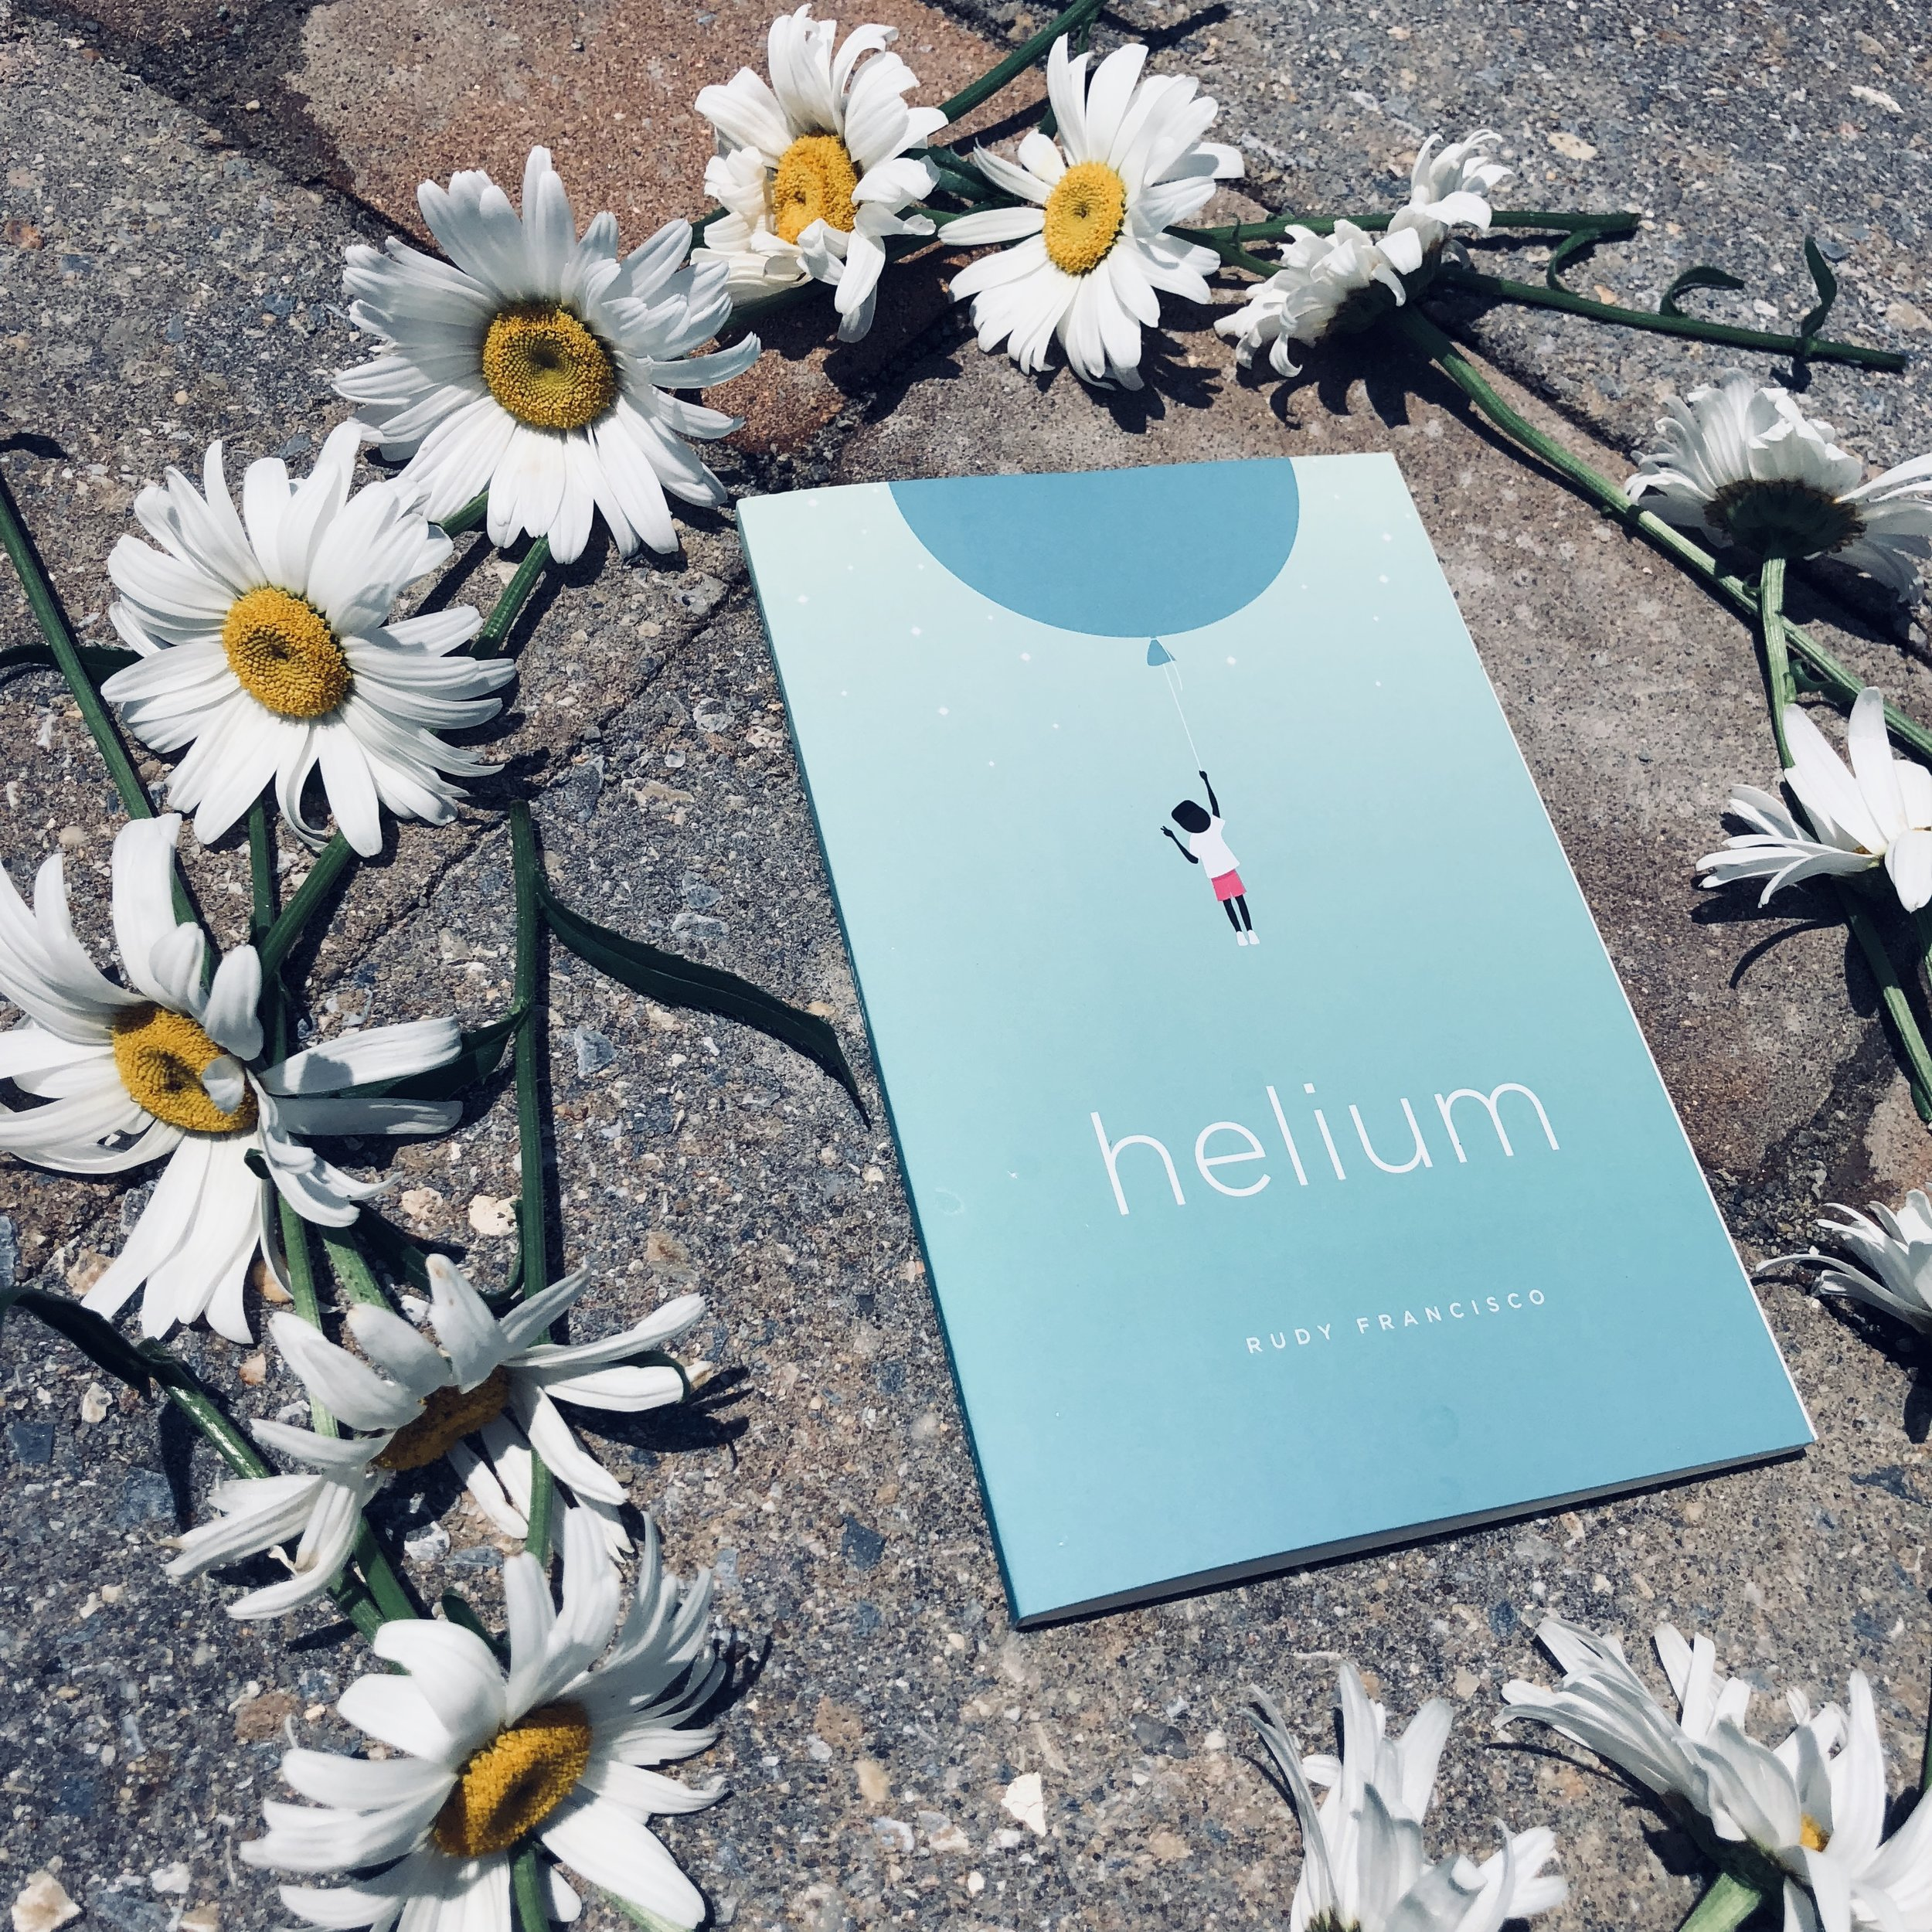 'Helium' - By Rudy Francisco